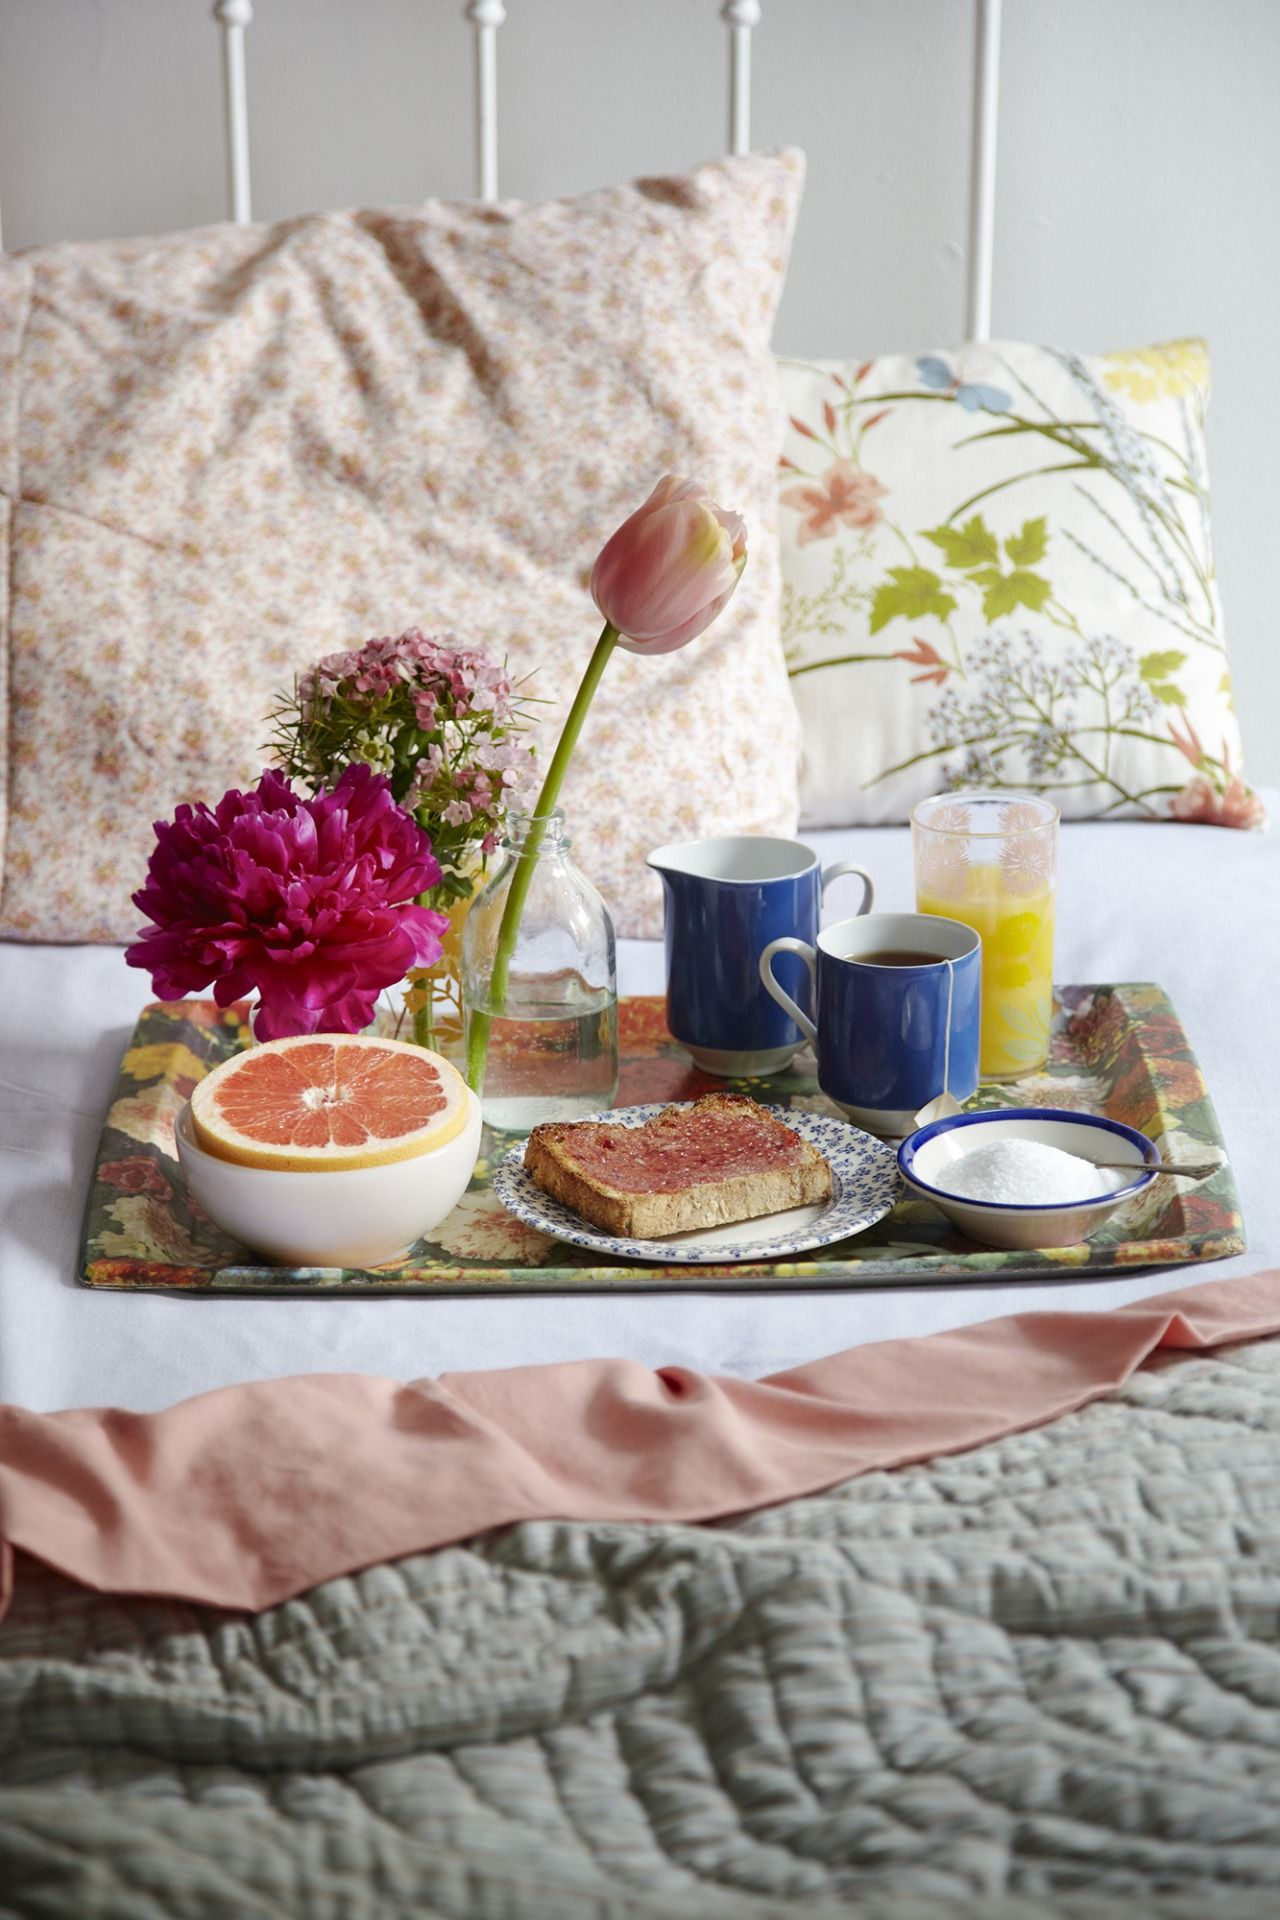 Breakfast in bed tumblr deliciousousness pinterest for Breakfast in bed ideas